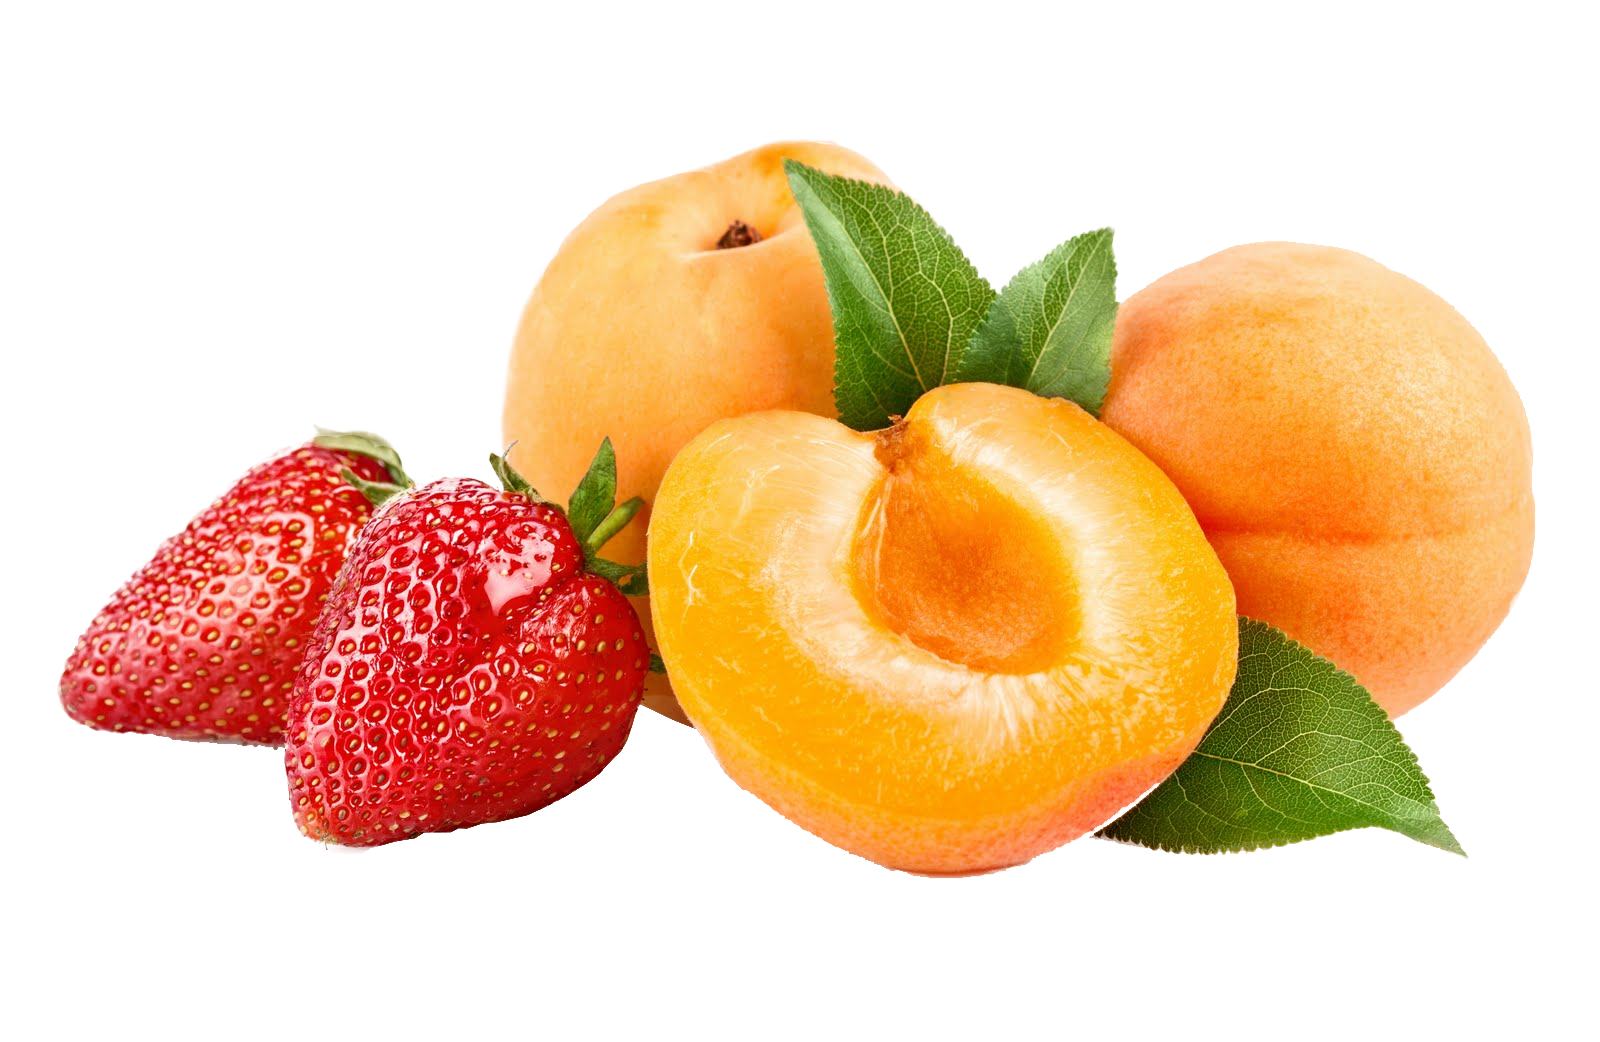 Fruit Png Hd PNG Image